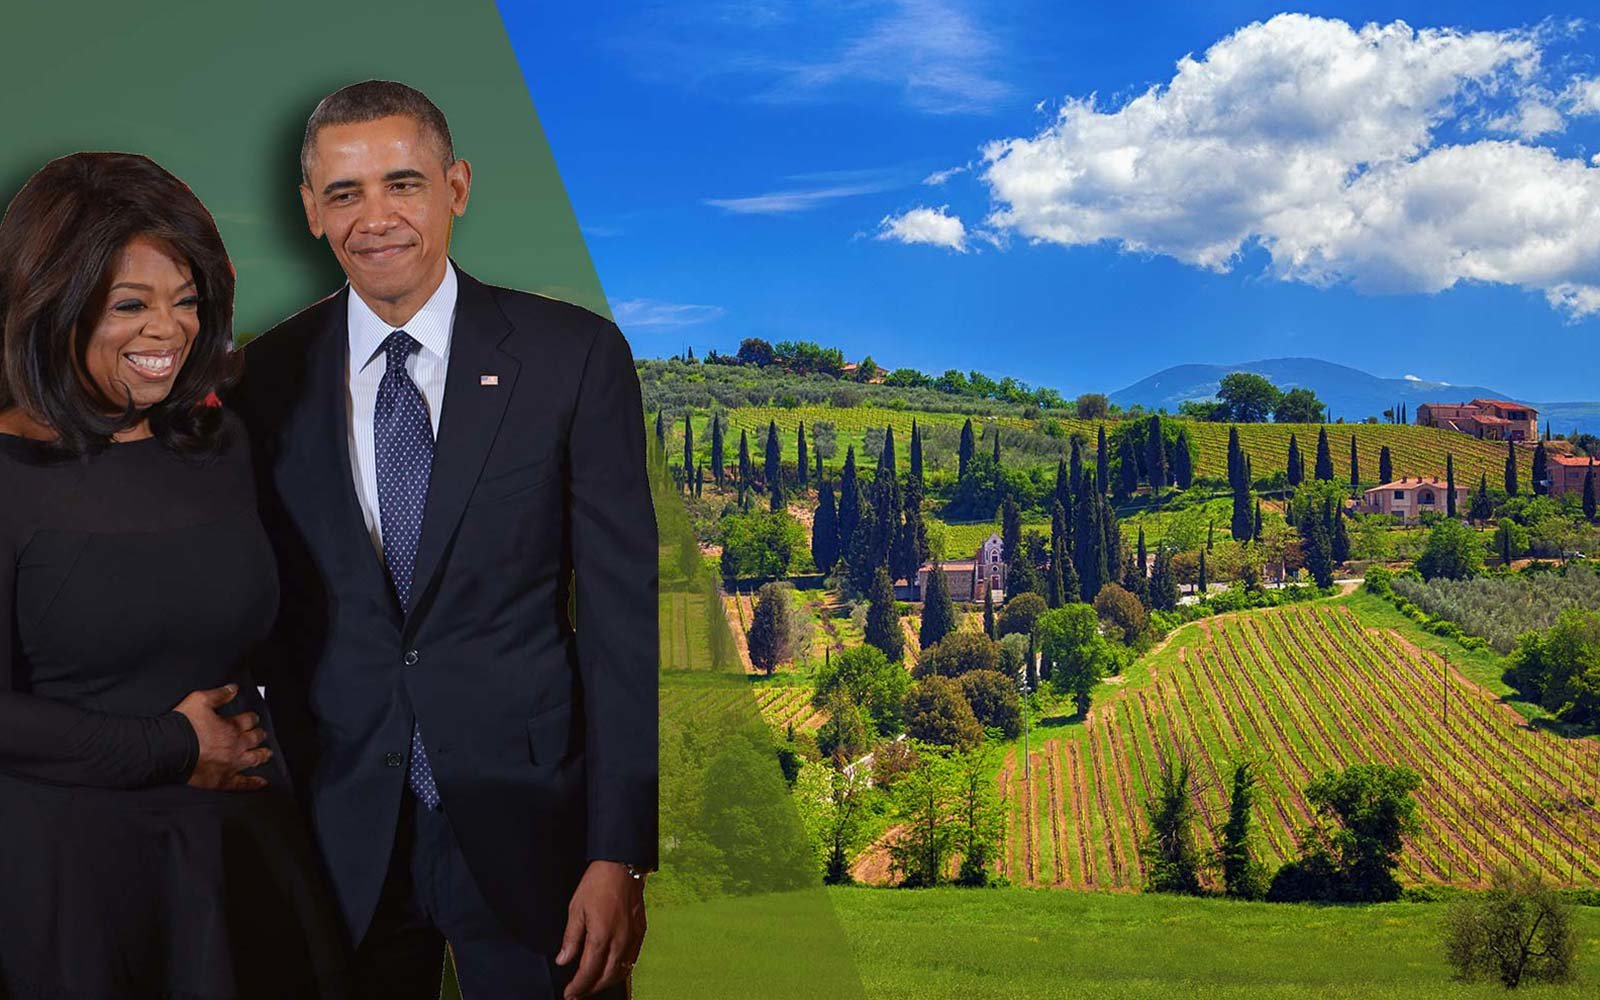 Access Italy tour guide Barack Obama Oprah Winfrey